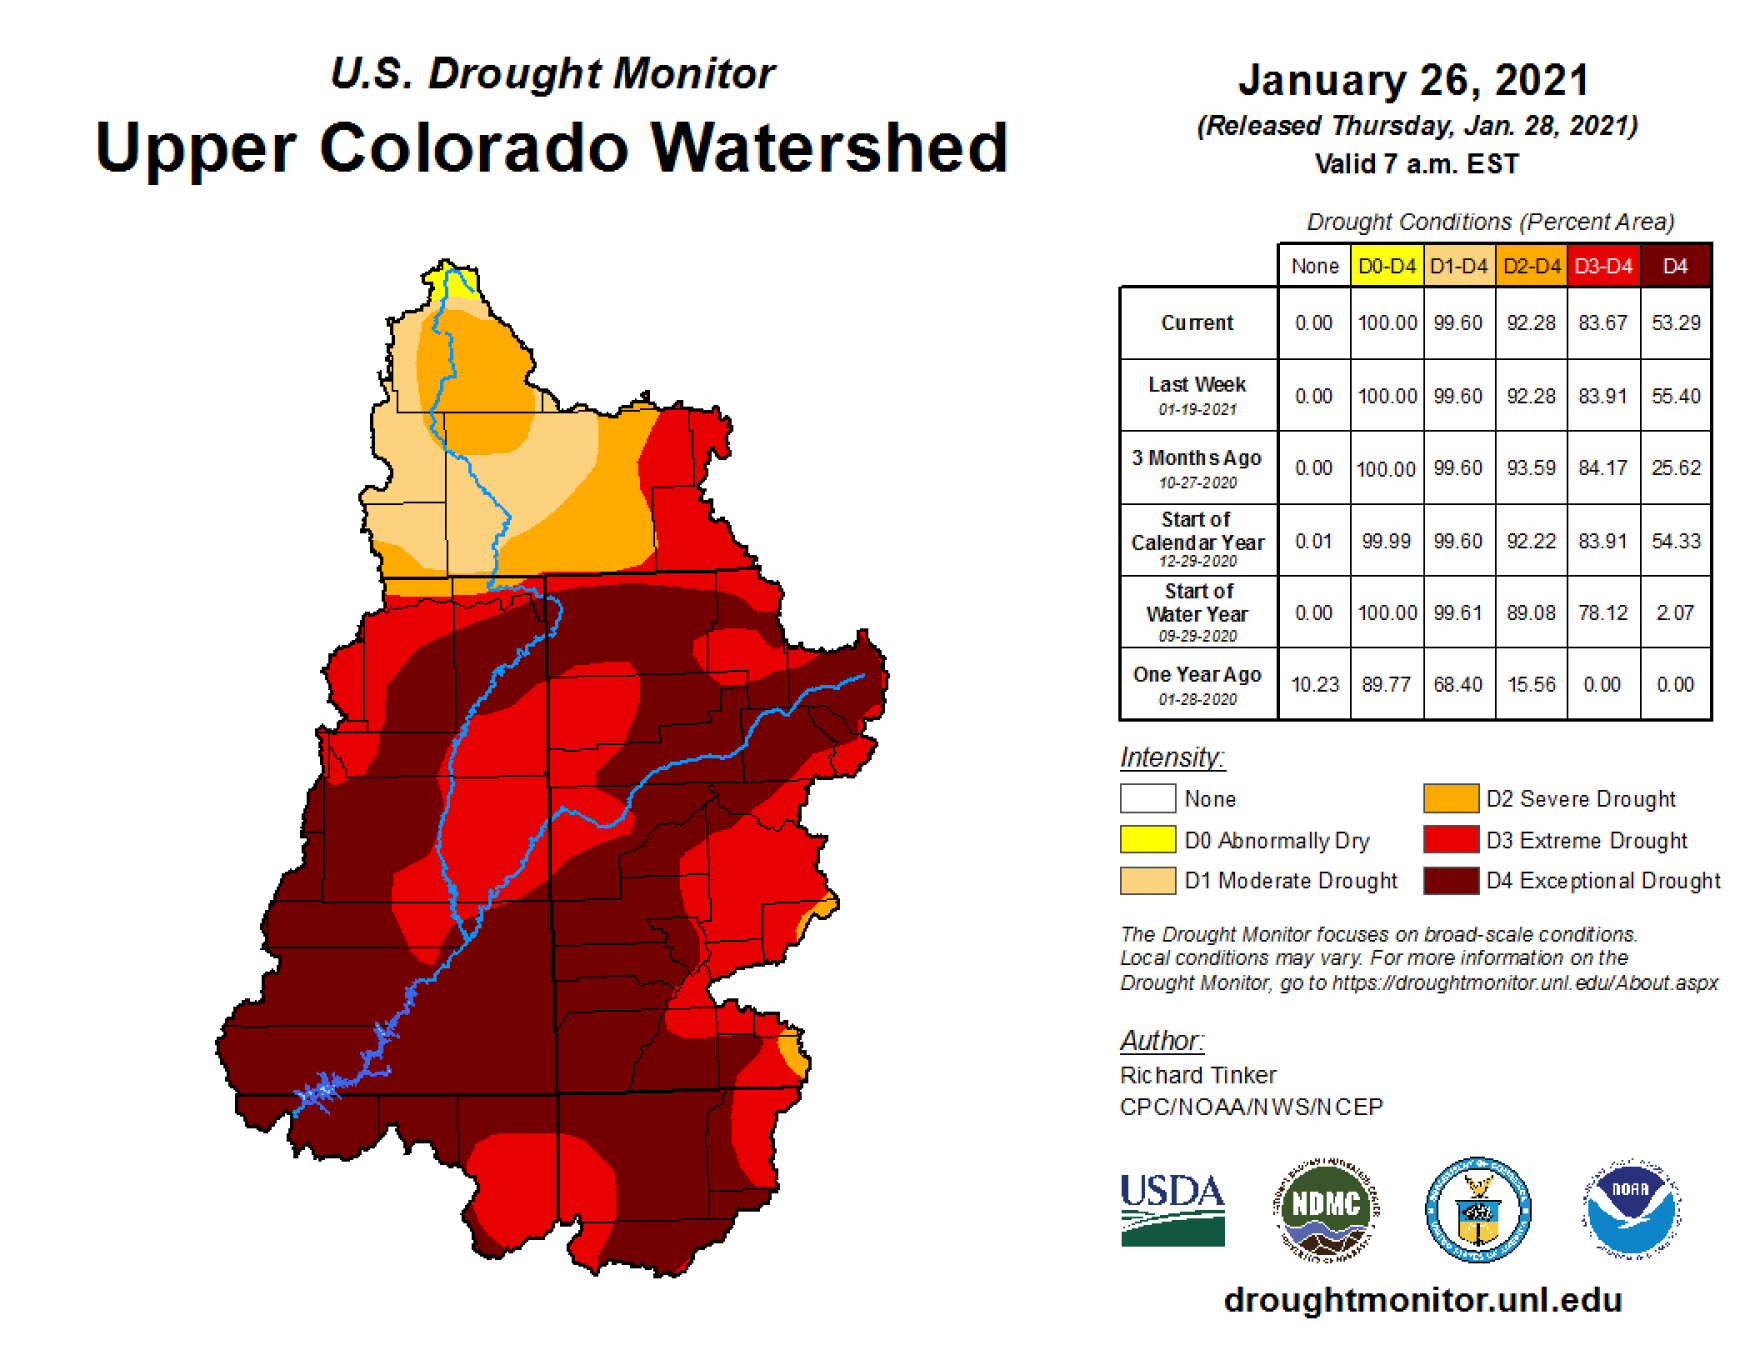 a map showing the upper colorado rivershed with a data table to the right. according the color coding, most of the region is in extreme drought